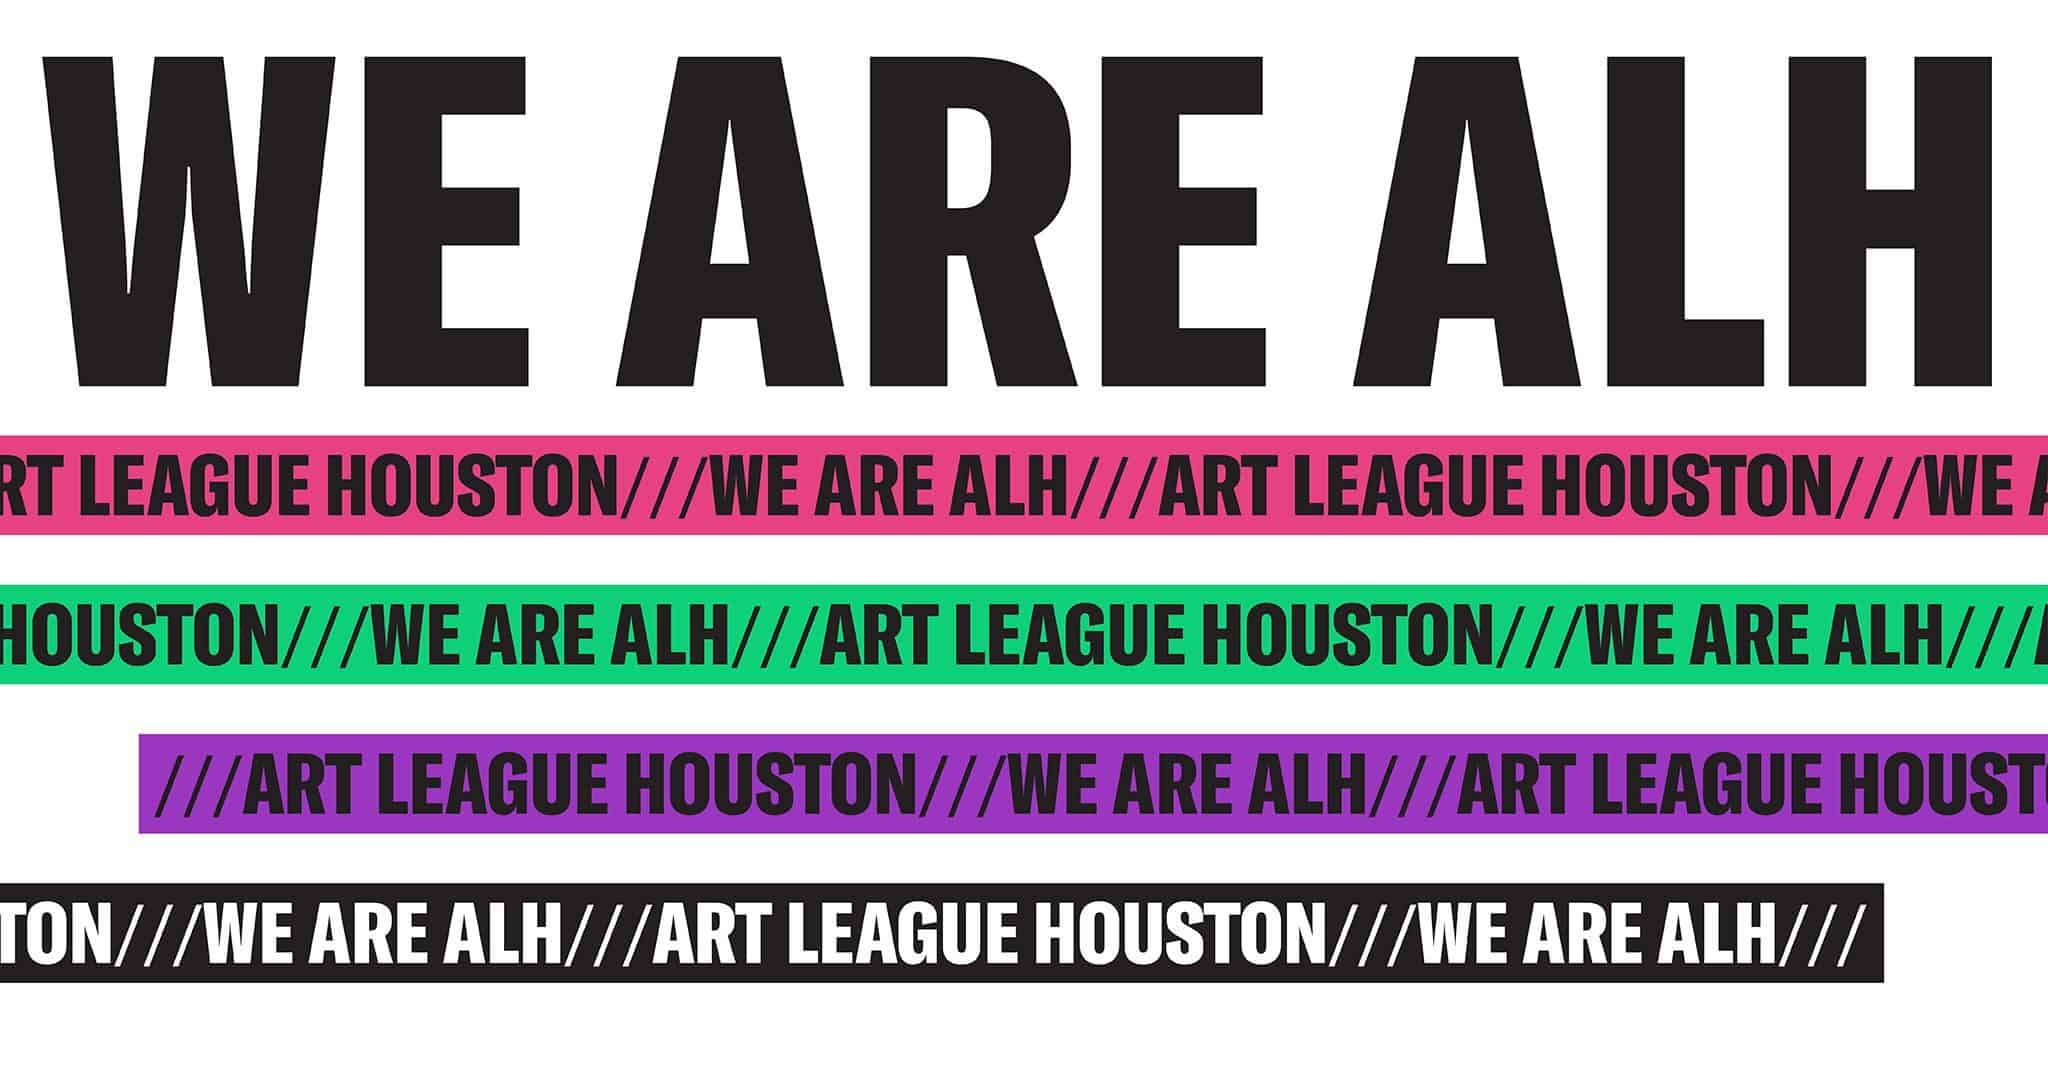 Tagline graphics for Art League Houston | Designed by Field of Study: A branding and graphic design consultancy | Houston TX | Jennifer Blanco & John Earles